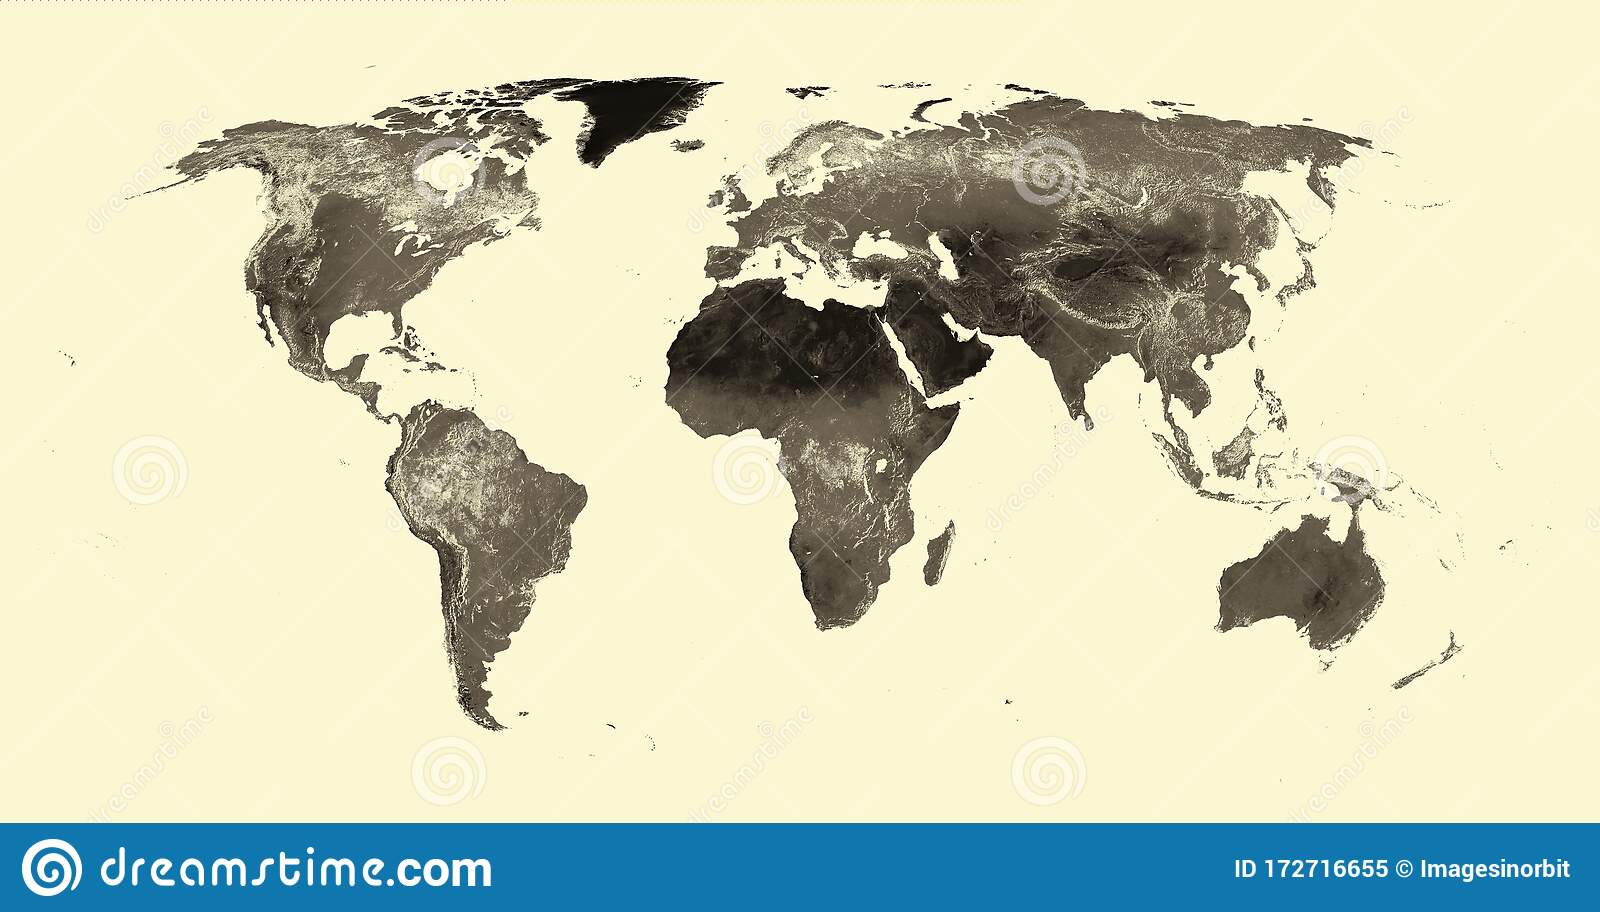 World Map Antique Topographical No Borders Robinson Projection Nature Mountains Rivers Oceans Lakes Stock Image Illustration Of Africa Brazil 172716655